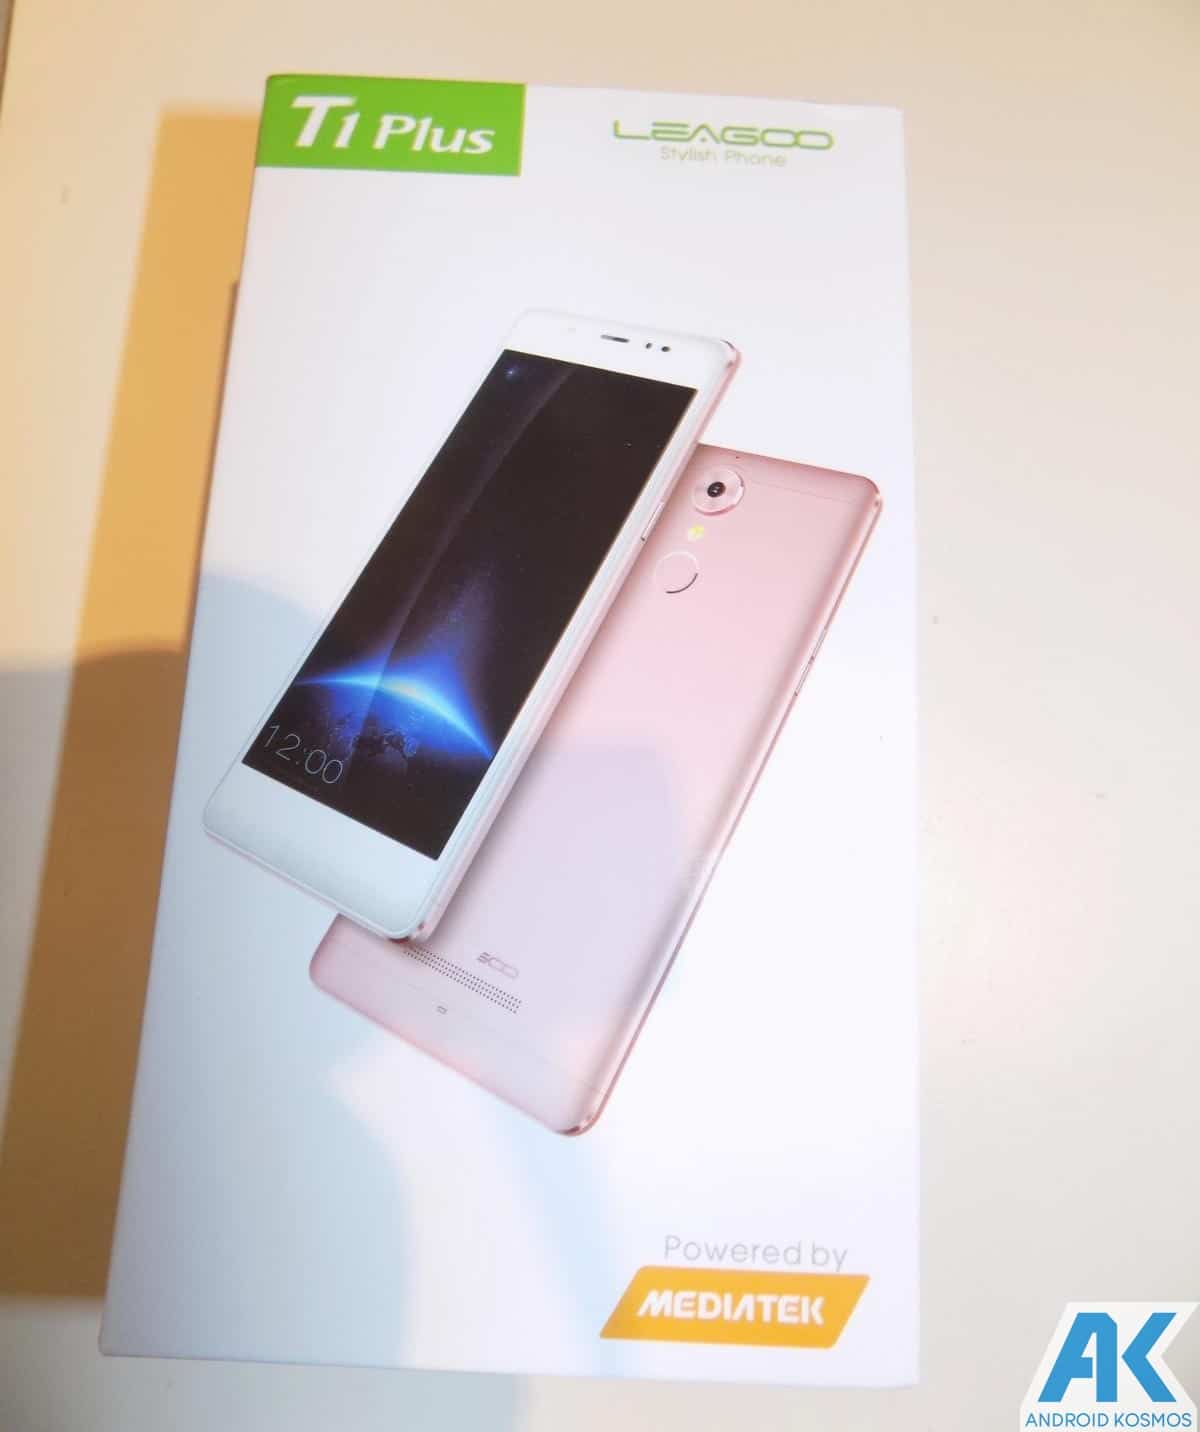 Test/Review: Leagoo T1 Plus - 5.5 Zoll LTE Budget Phone im Test - Braucht man FullHD? 3